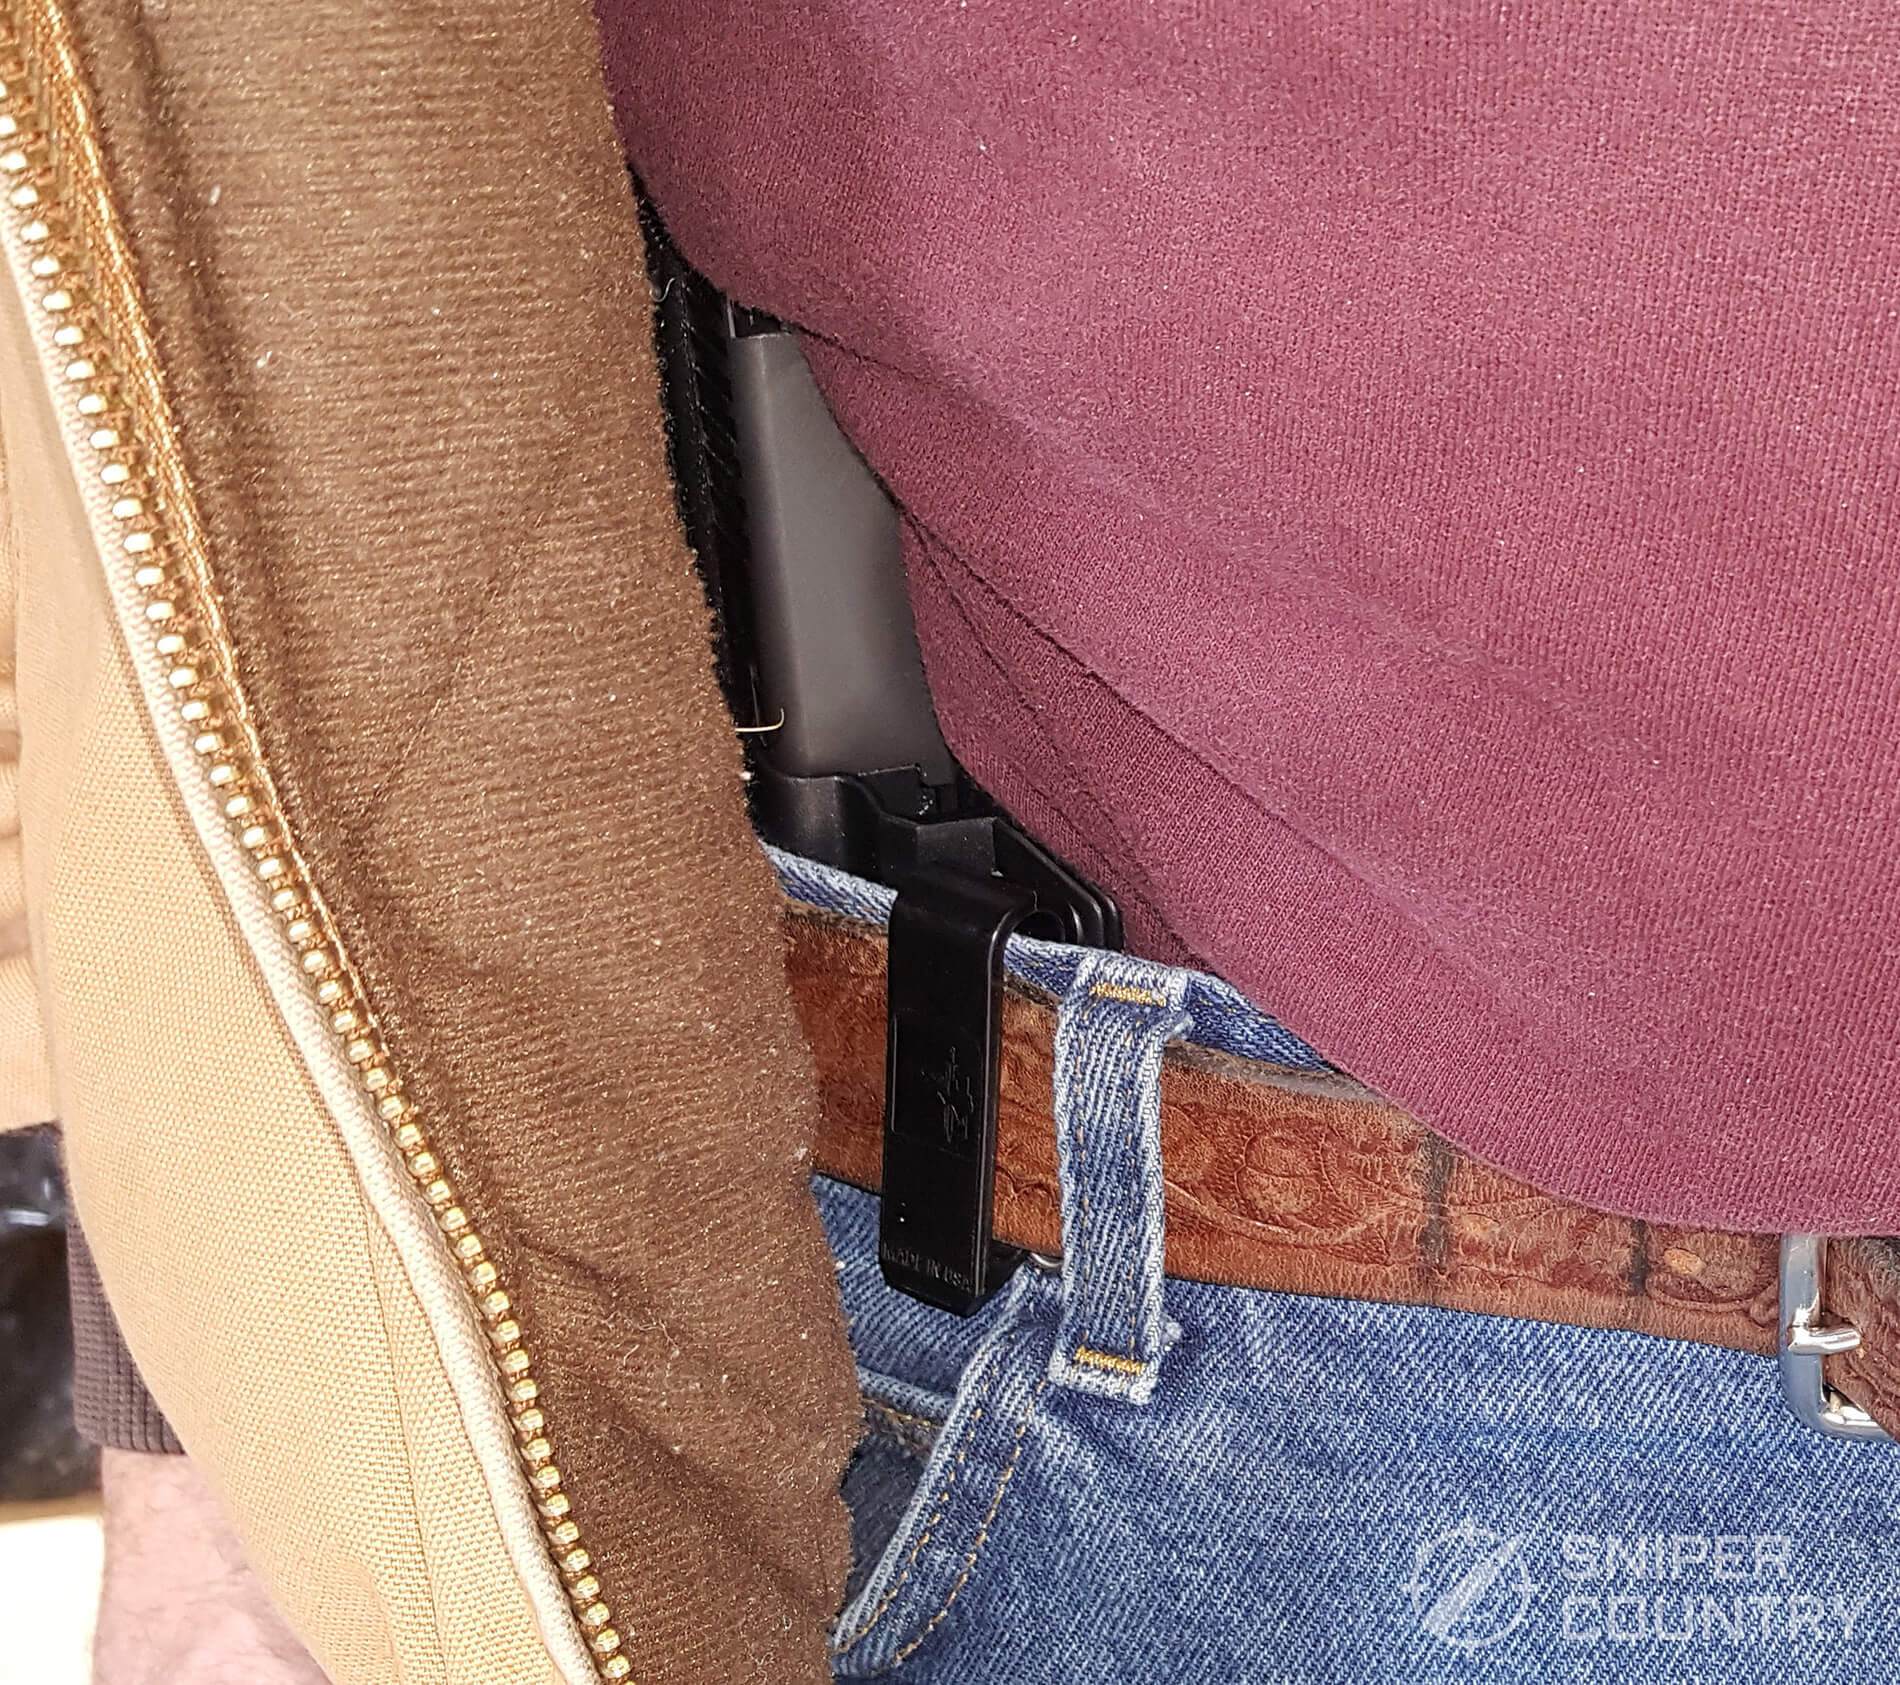 Bravo Concealment Torsion Holster 3.0 on belt 3